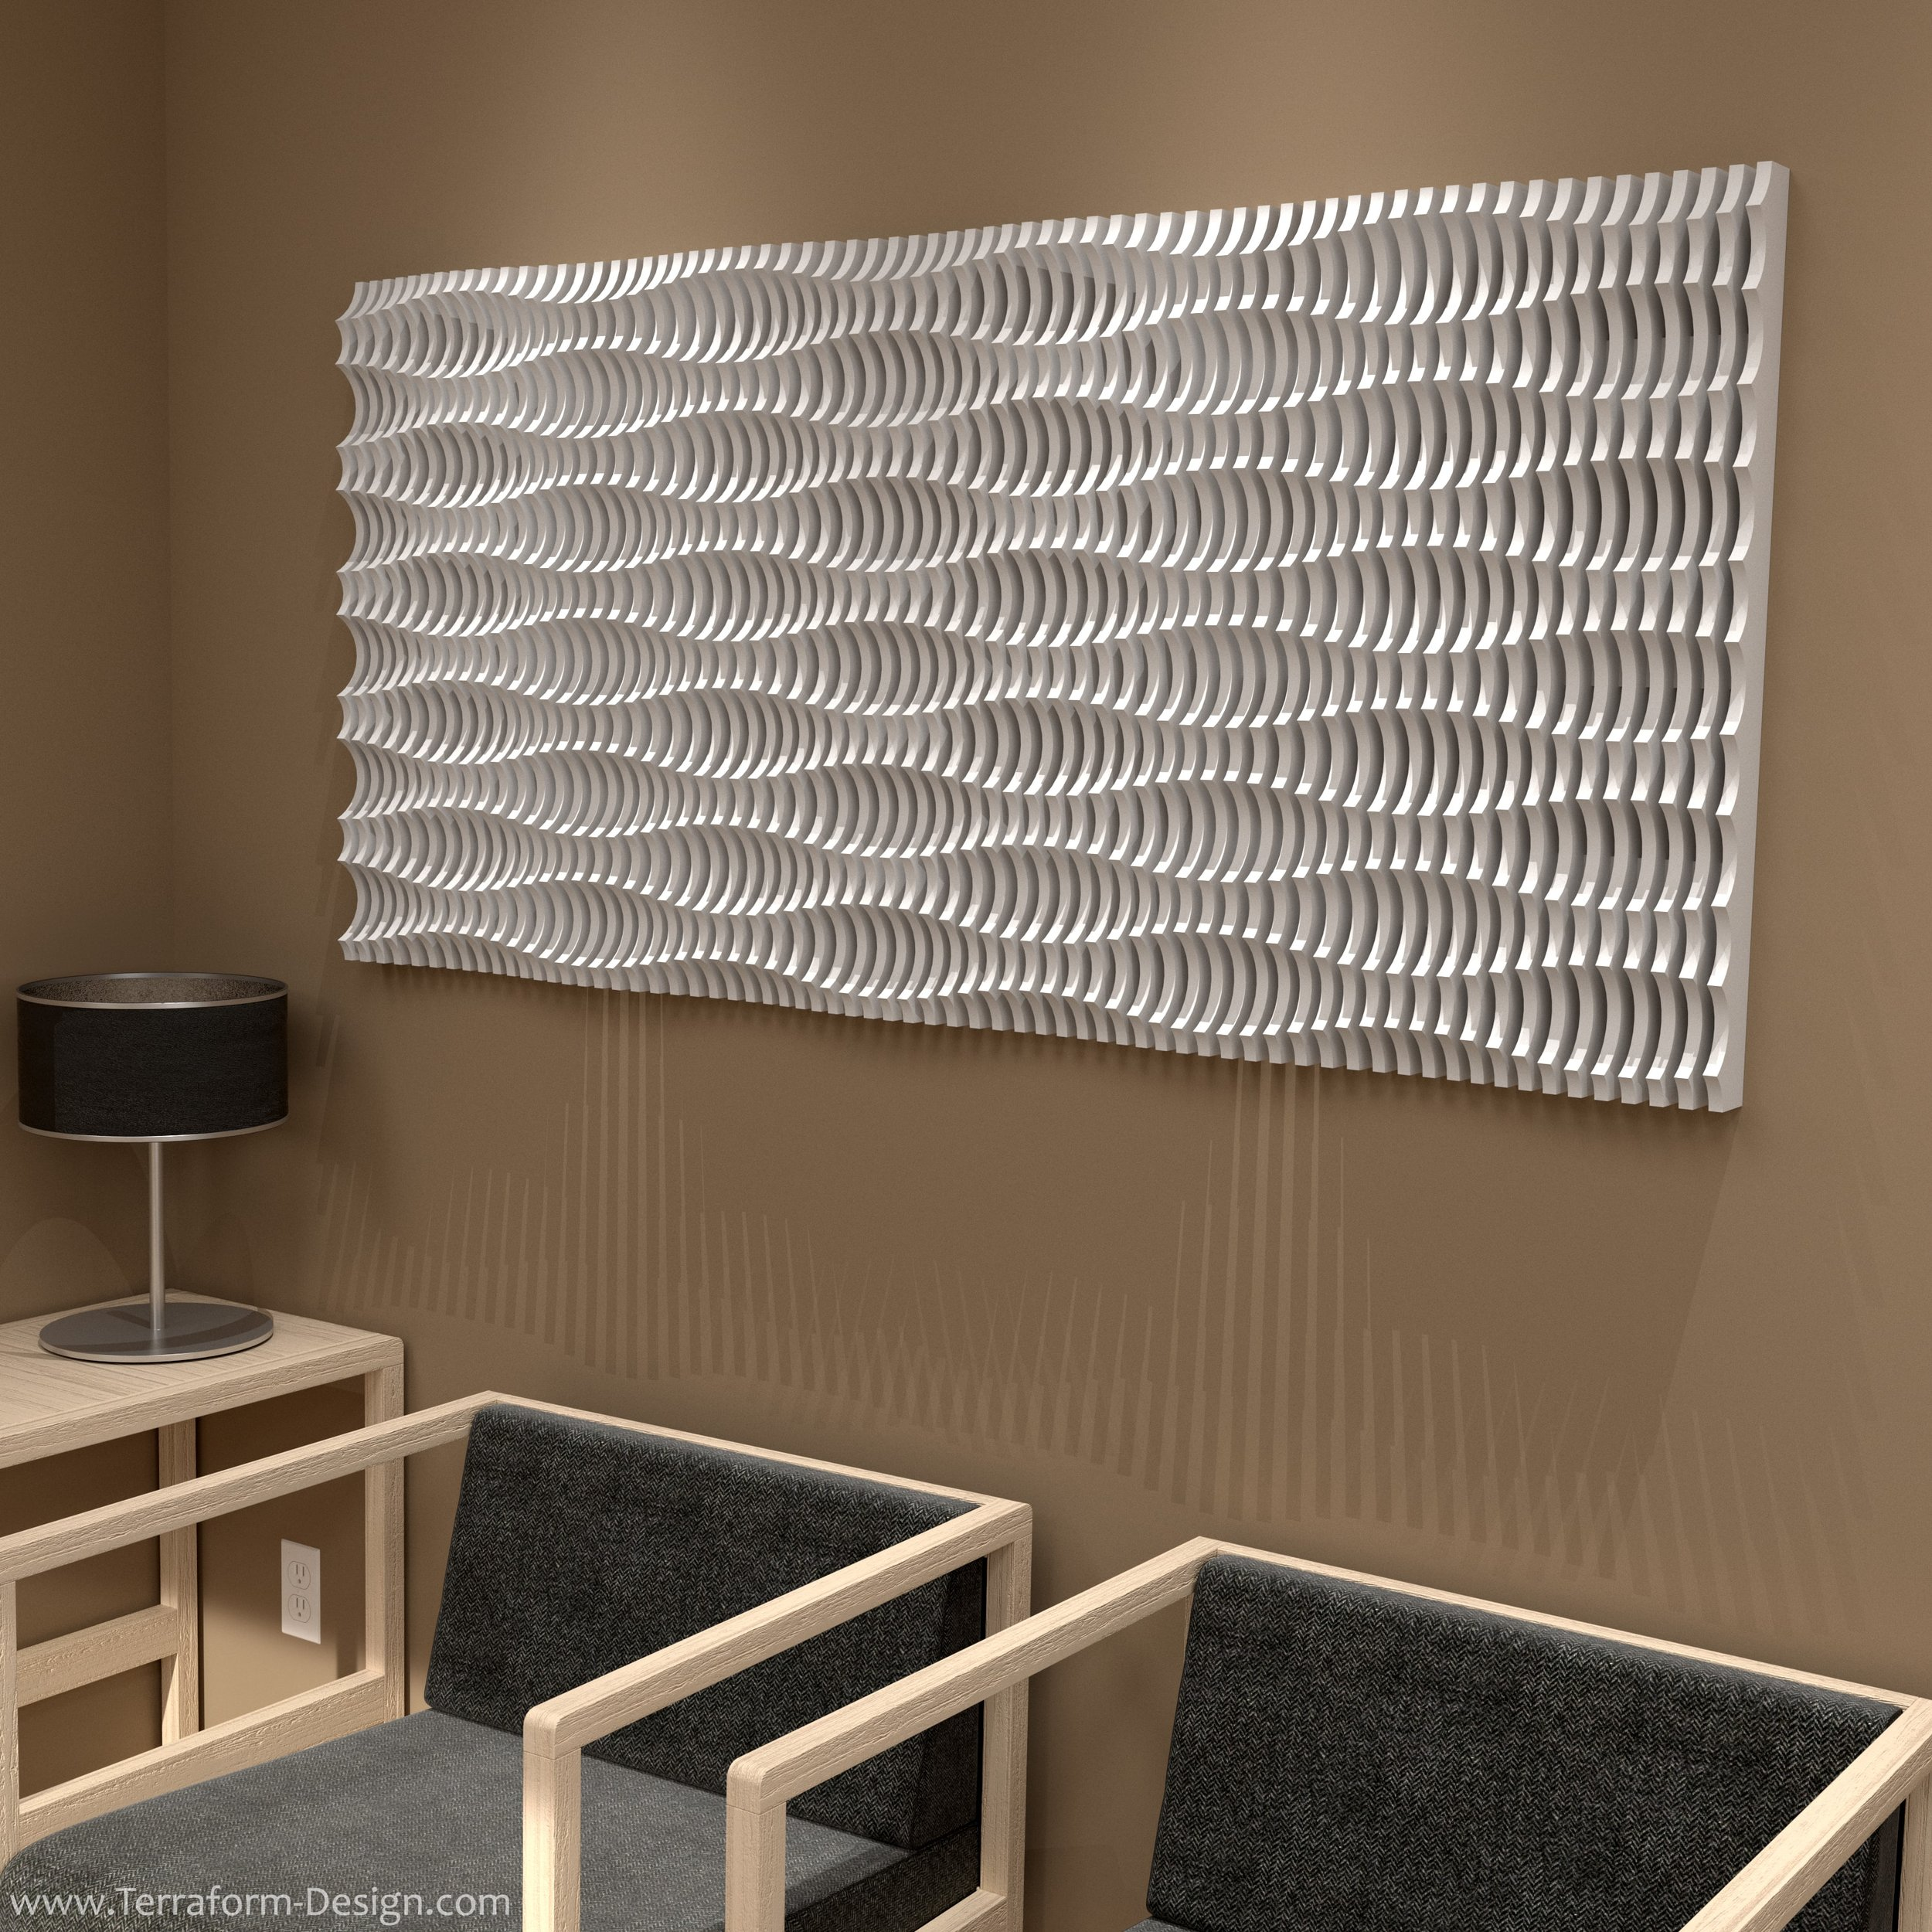 acoustic I_clnc_10W parametric cnc router postmodern sectioned organic geometric plywood wall fixture accent accessory wall decoration panel terraform design.jpg